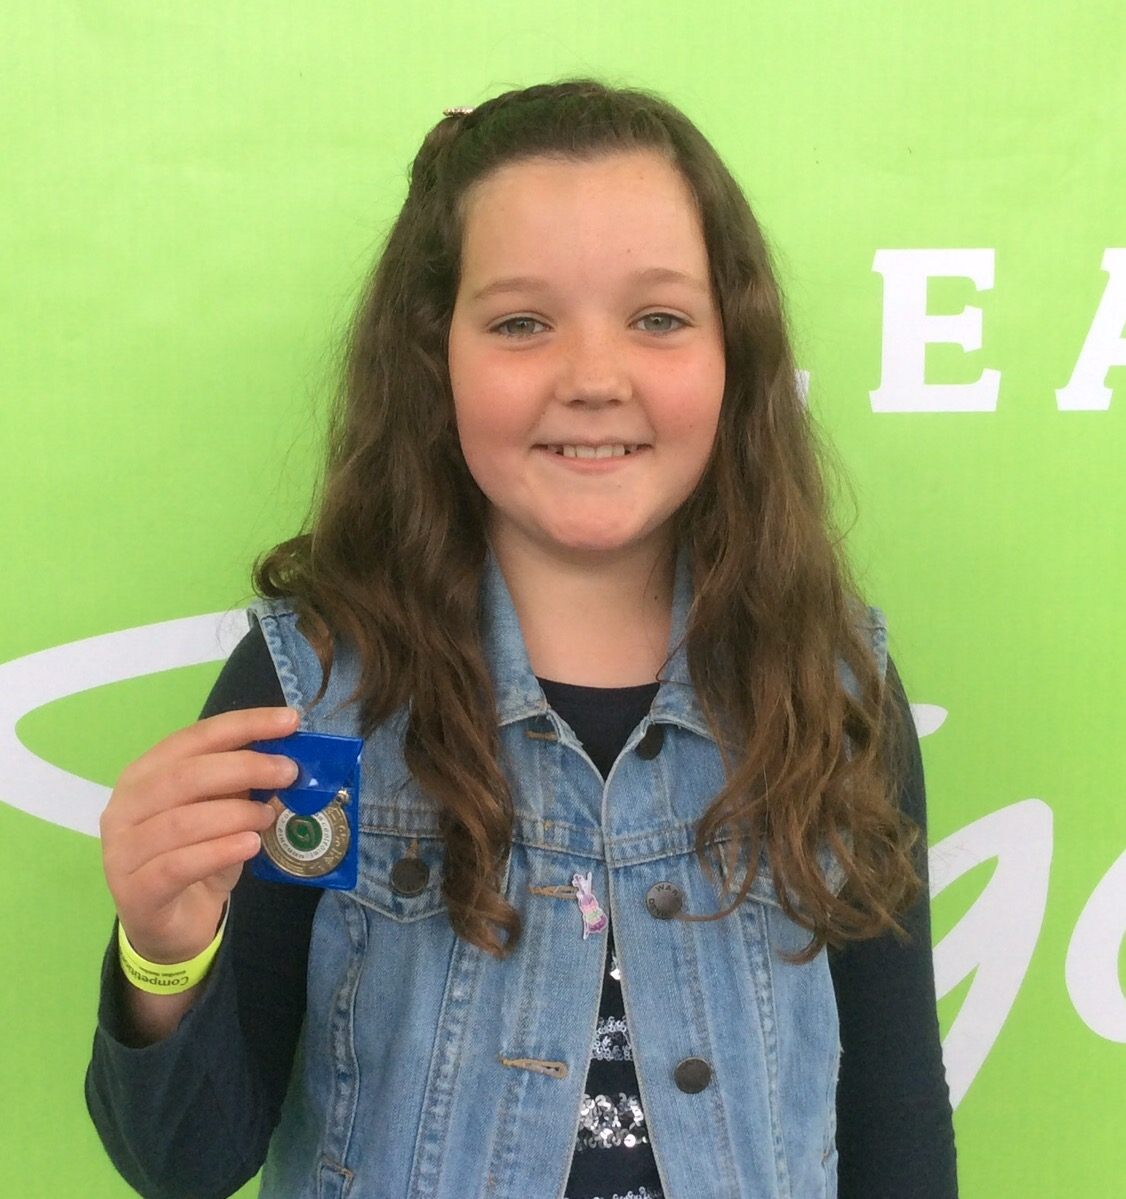 All Ireland Medal winner Cathleen Garland proudly shows off her winning smile along with her silver medal in the ladies Under 12 singing competition in Sligo.